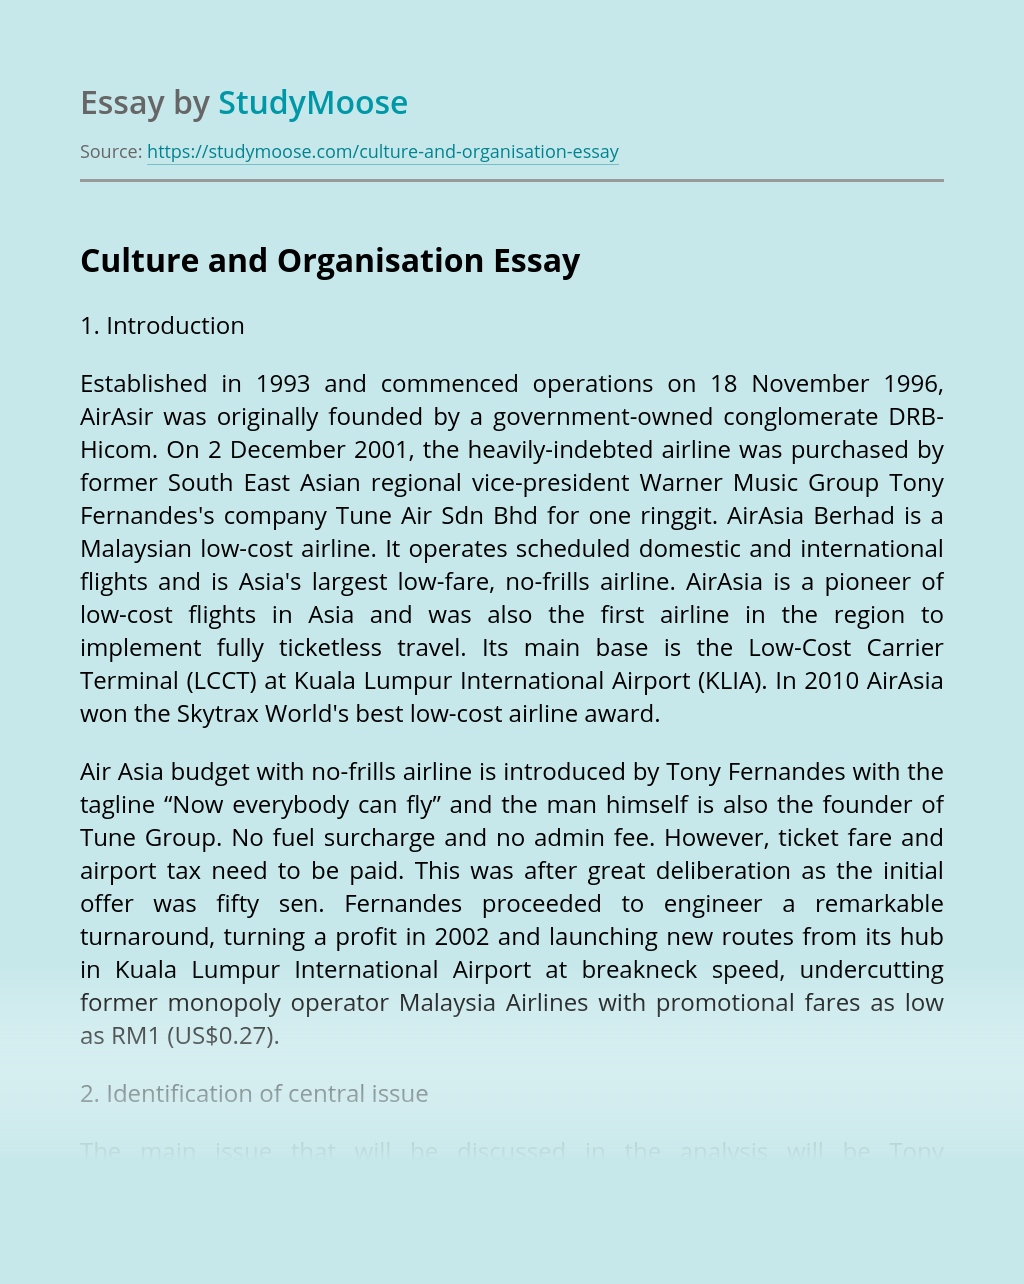 Culture and Organisation